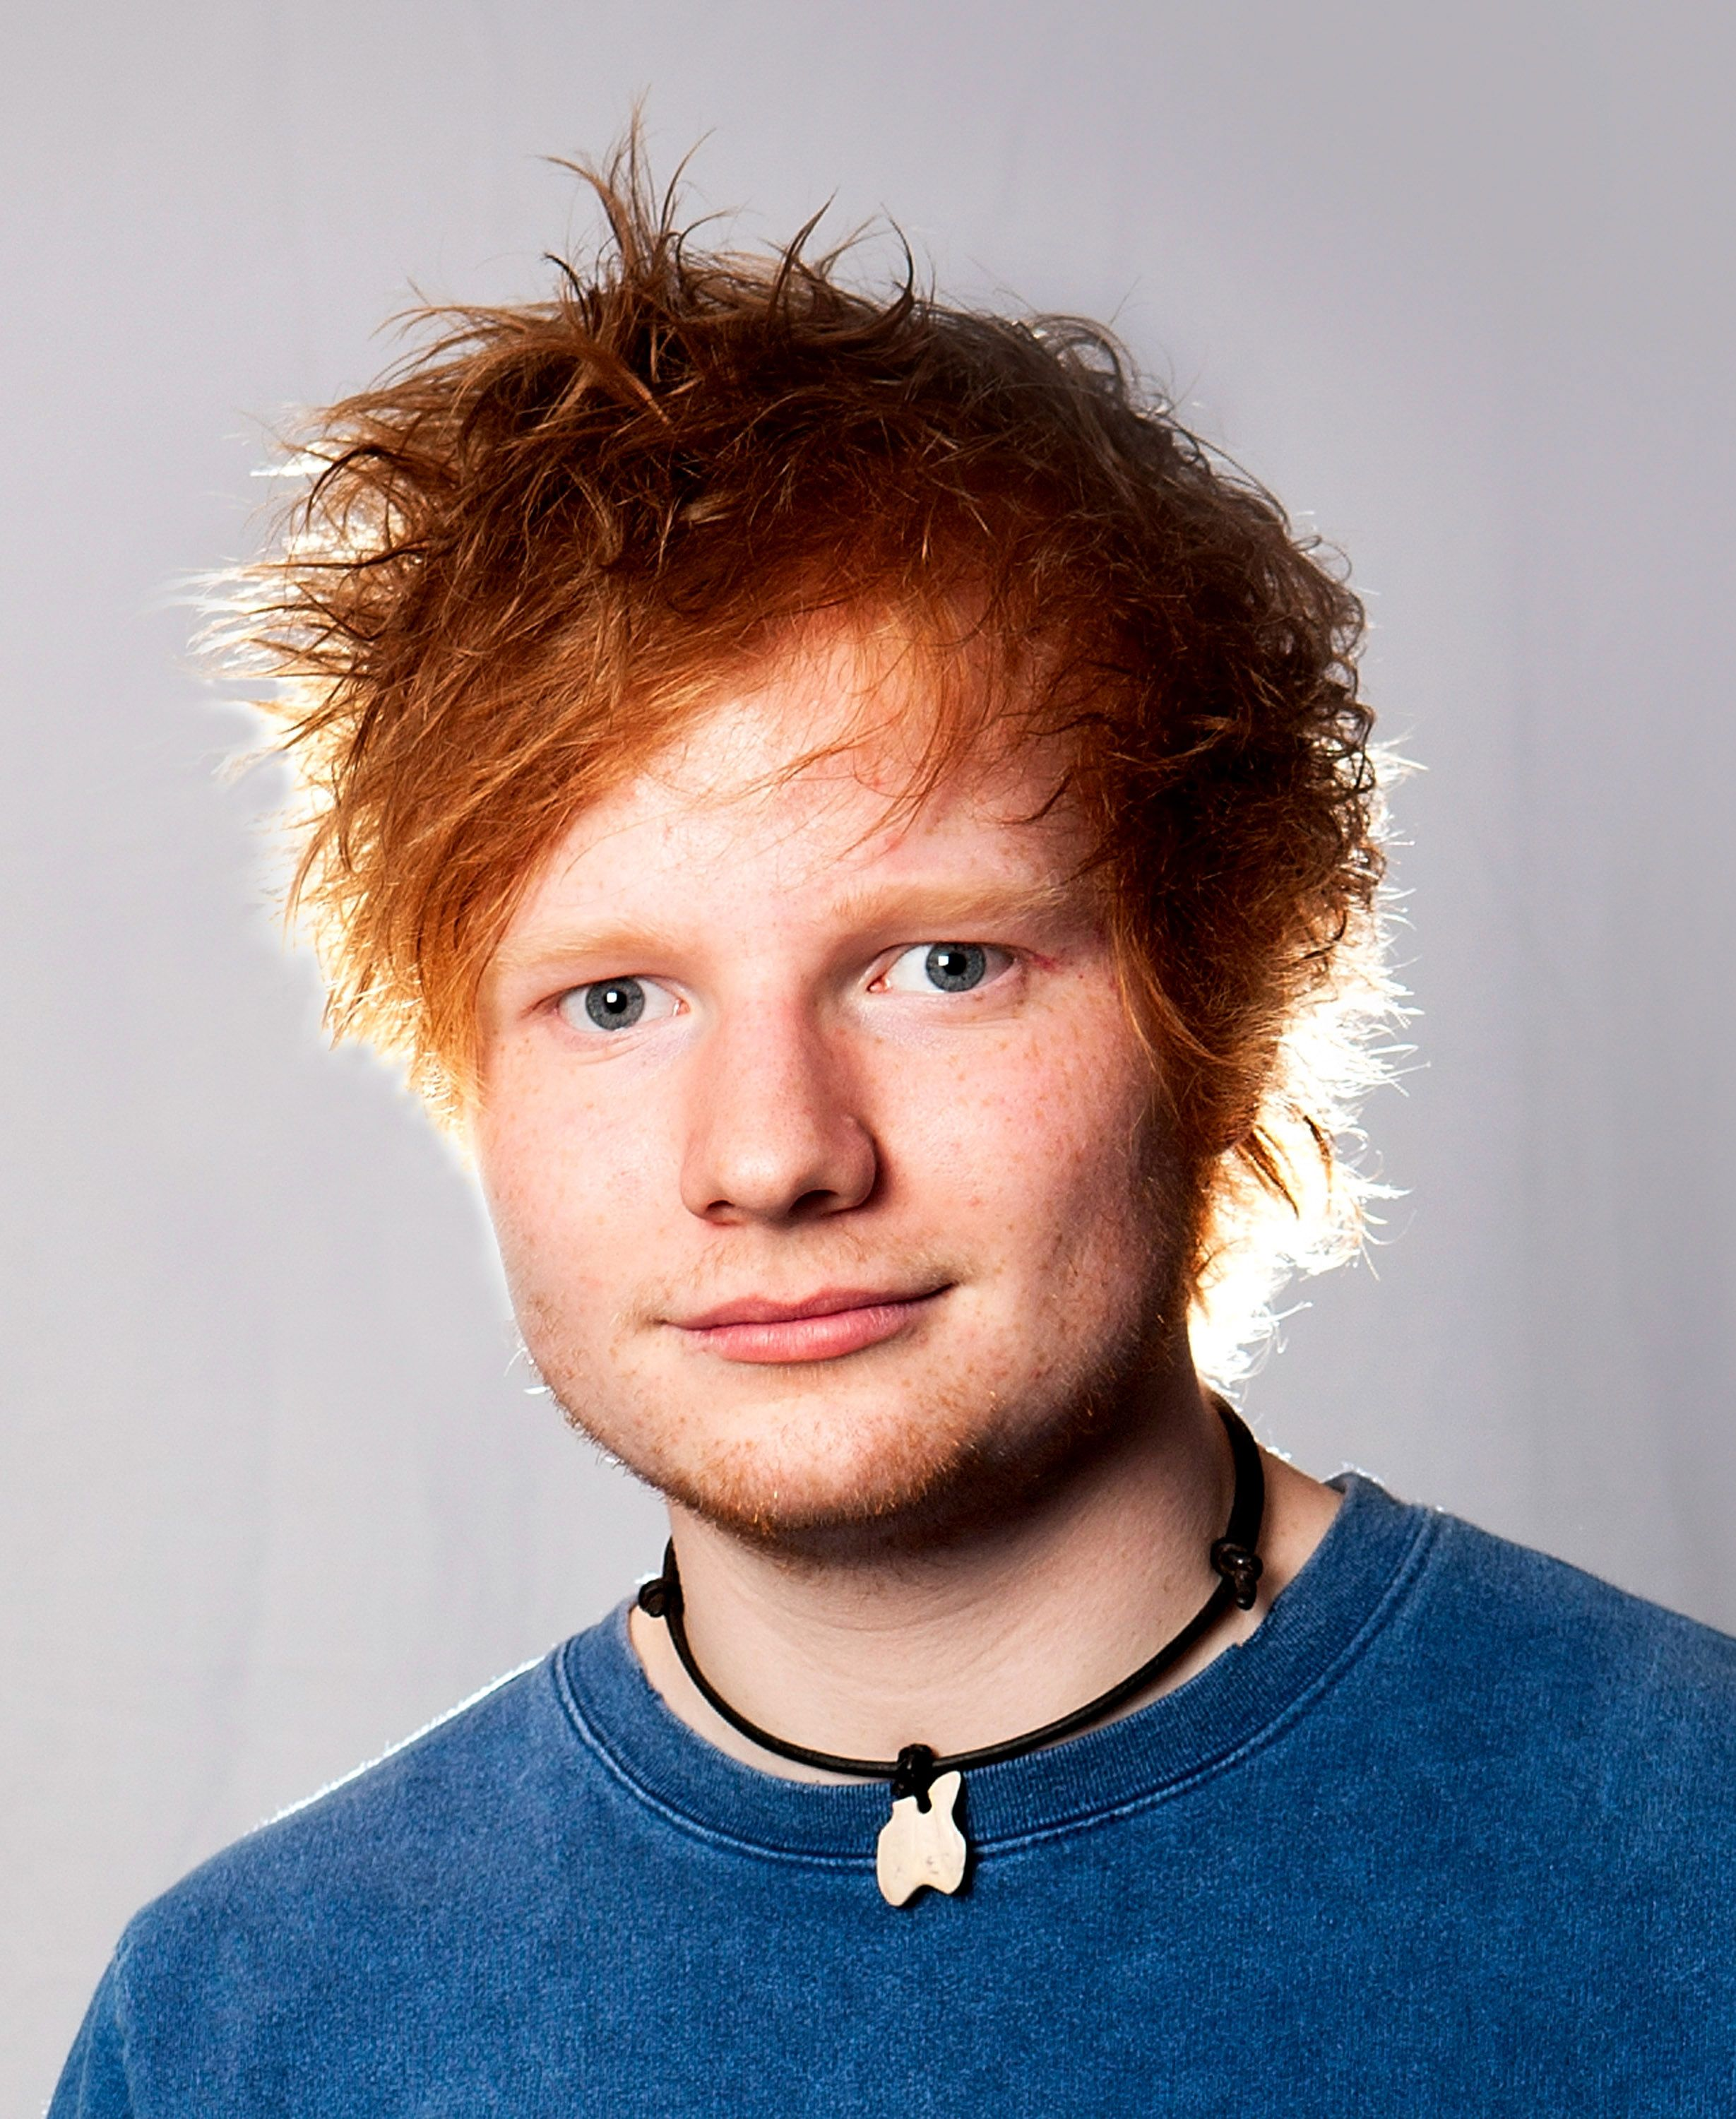 Ed Sheeran on June 21, 2011 in London, England.   Photo: Getty Images